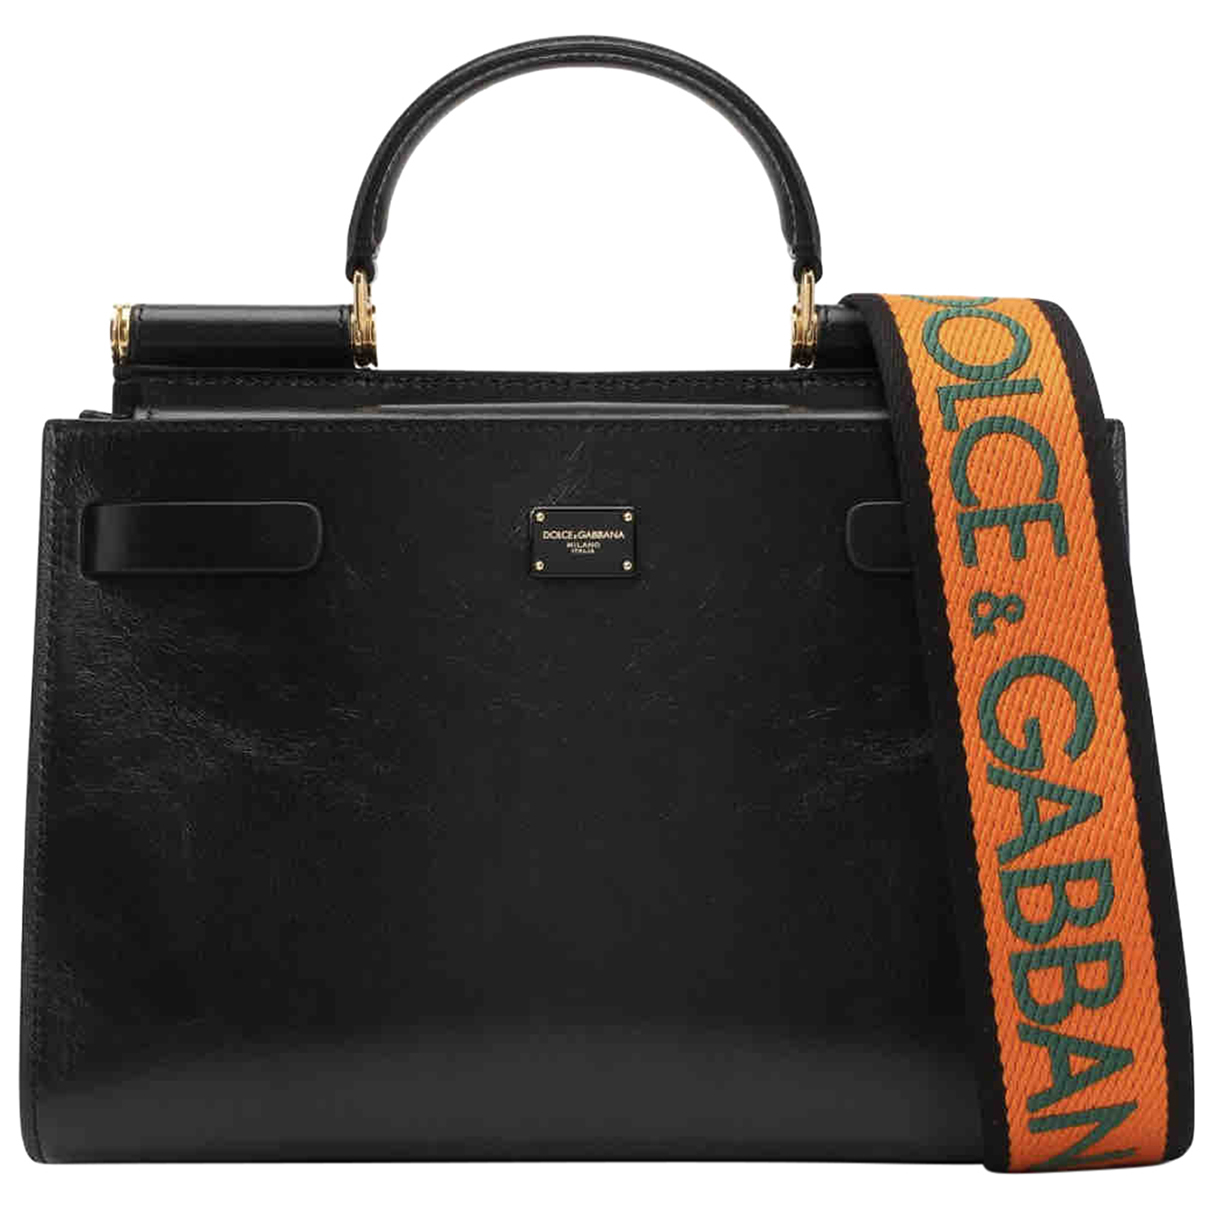 Dolce & Gabbana Sicily 62 Black Leather handbag for Women N